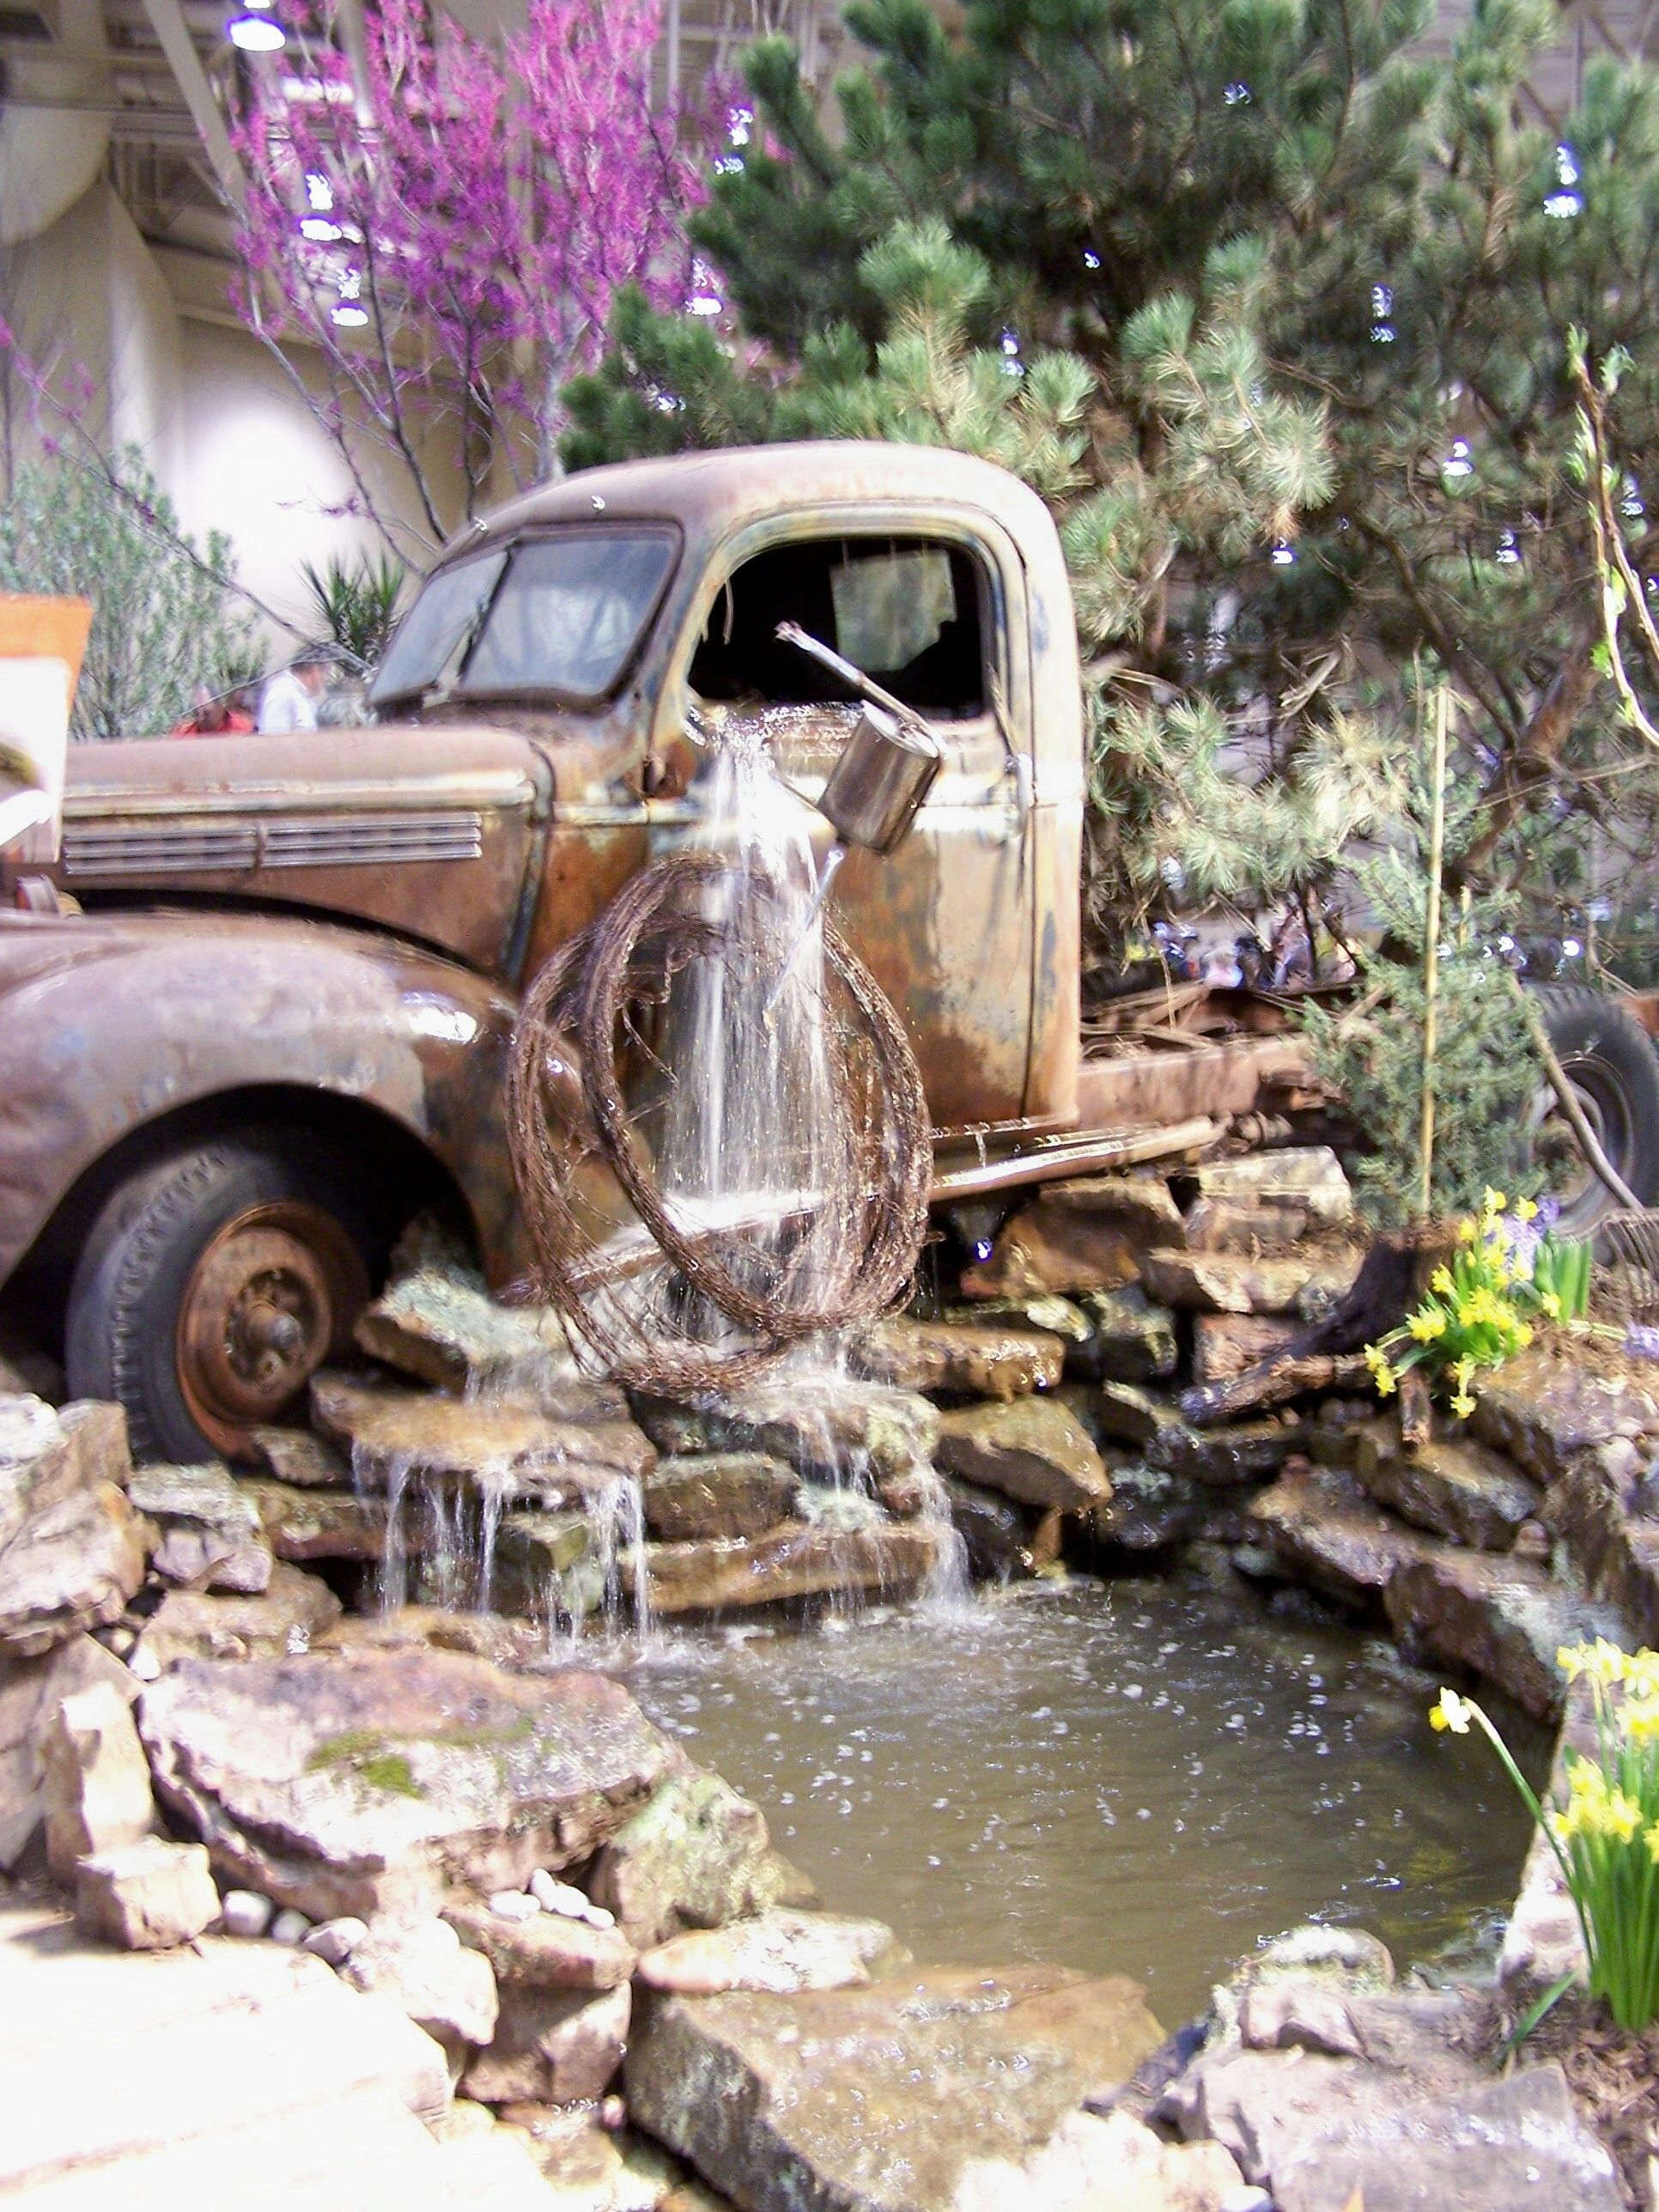 Exceptionnel Use An Old, Rusty Car Or Truck For A Water Feature Centerpiece.